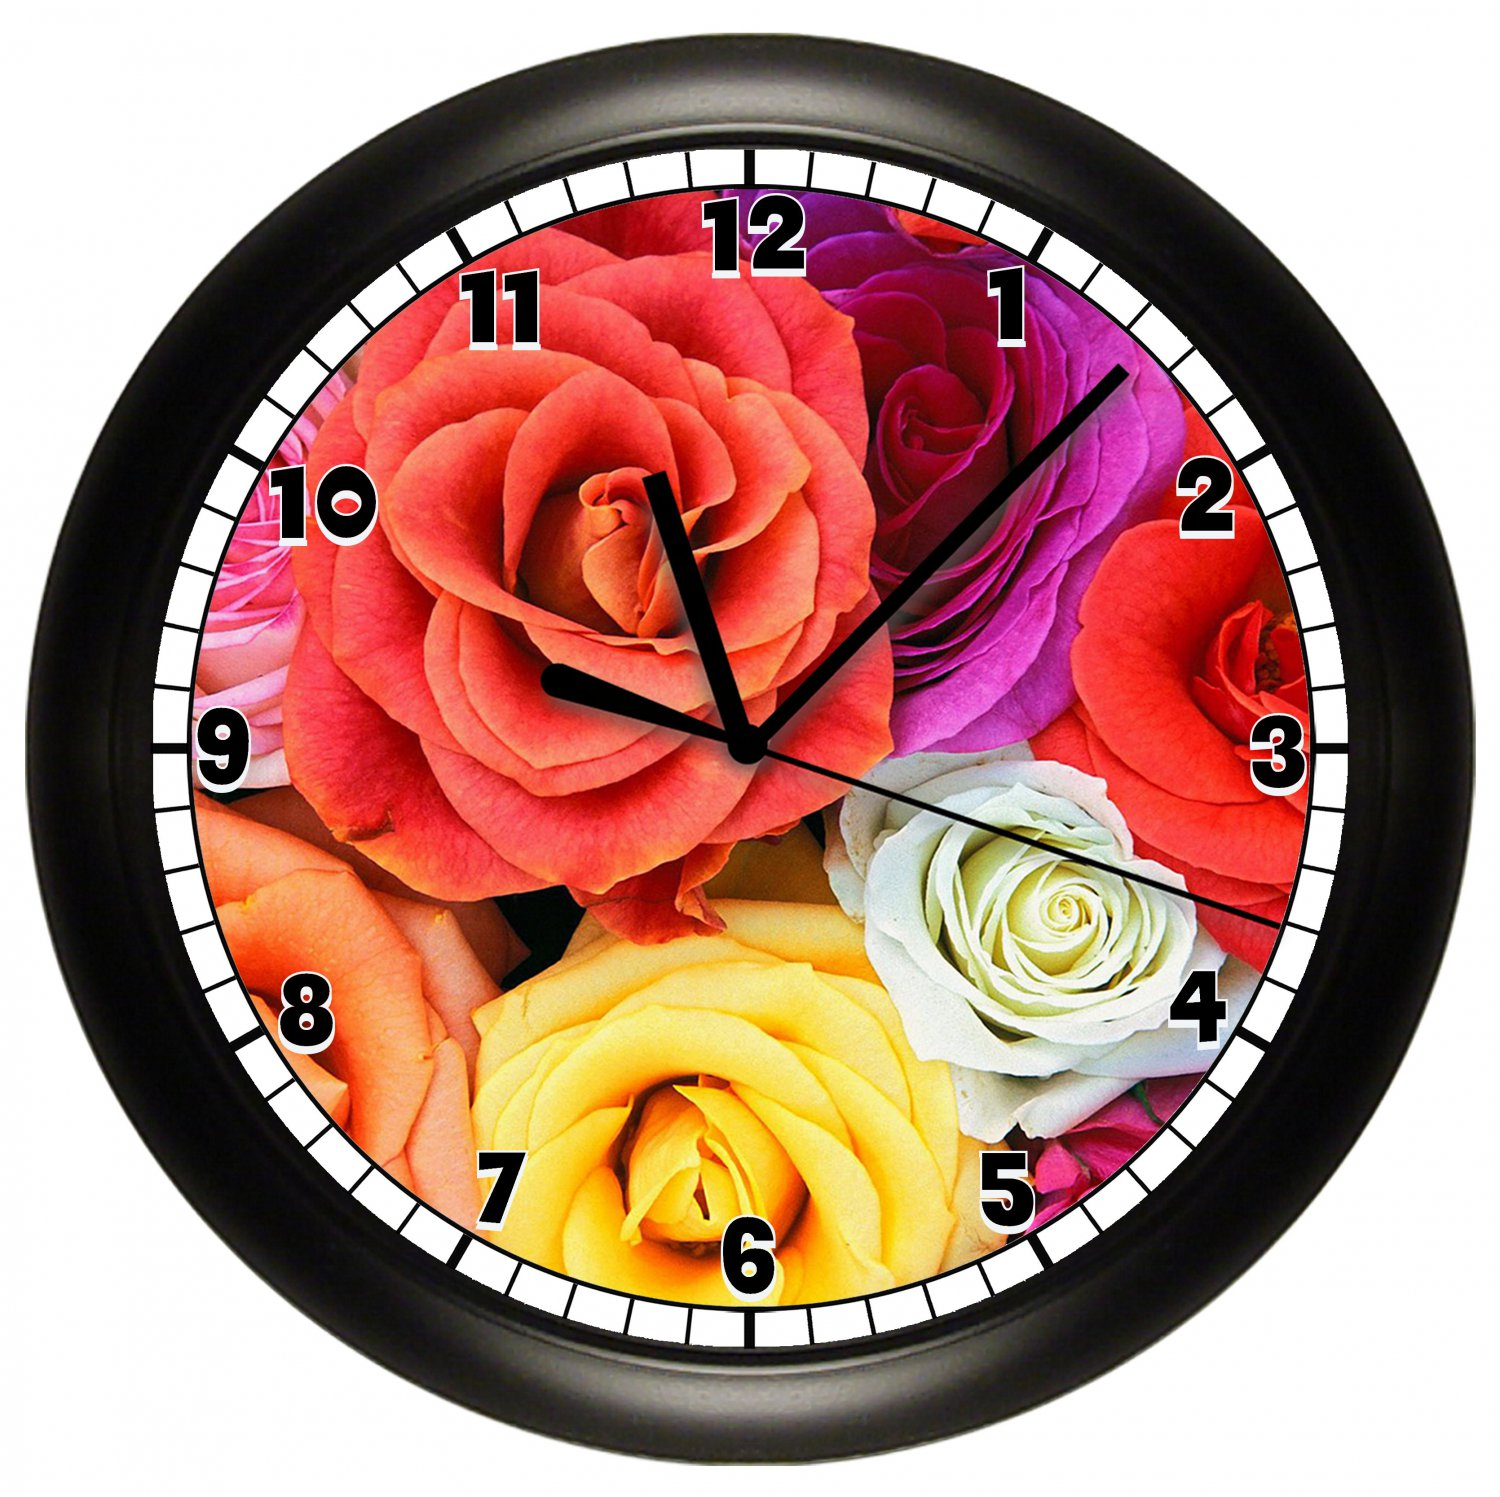 Electra yellow roses timeworks petite wall clocks nude